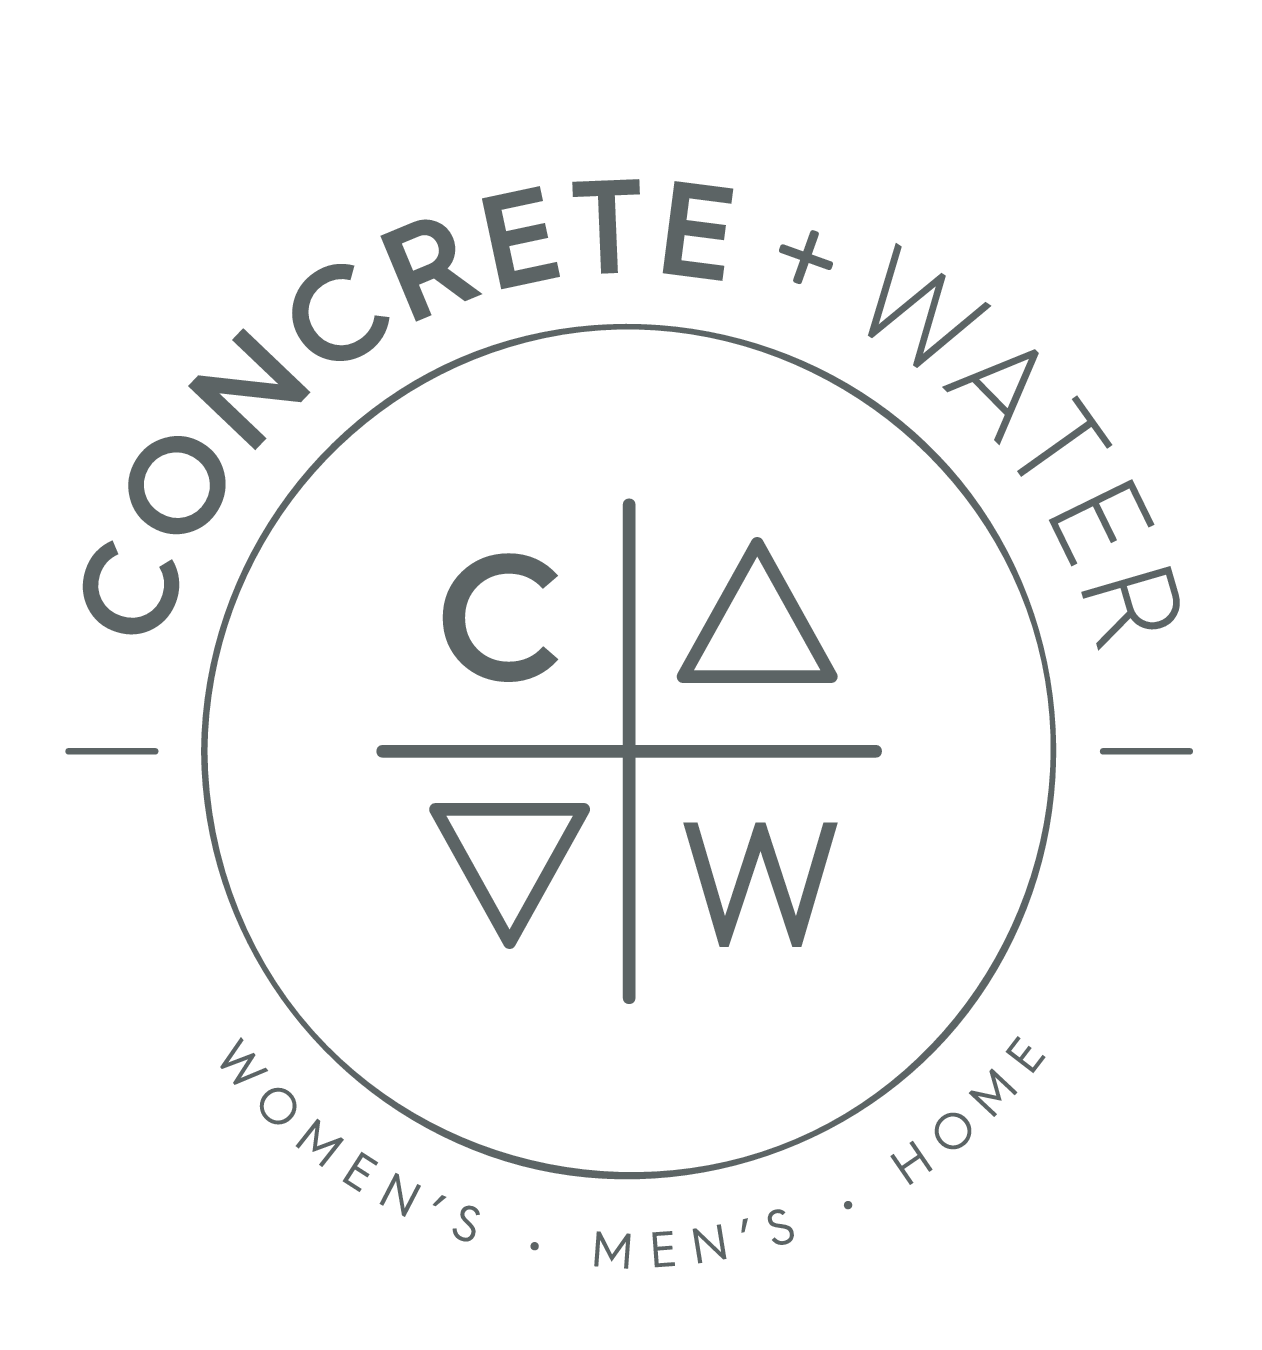 Concrete + Water